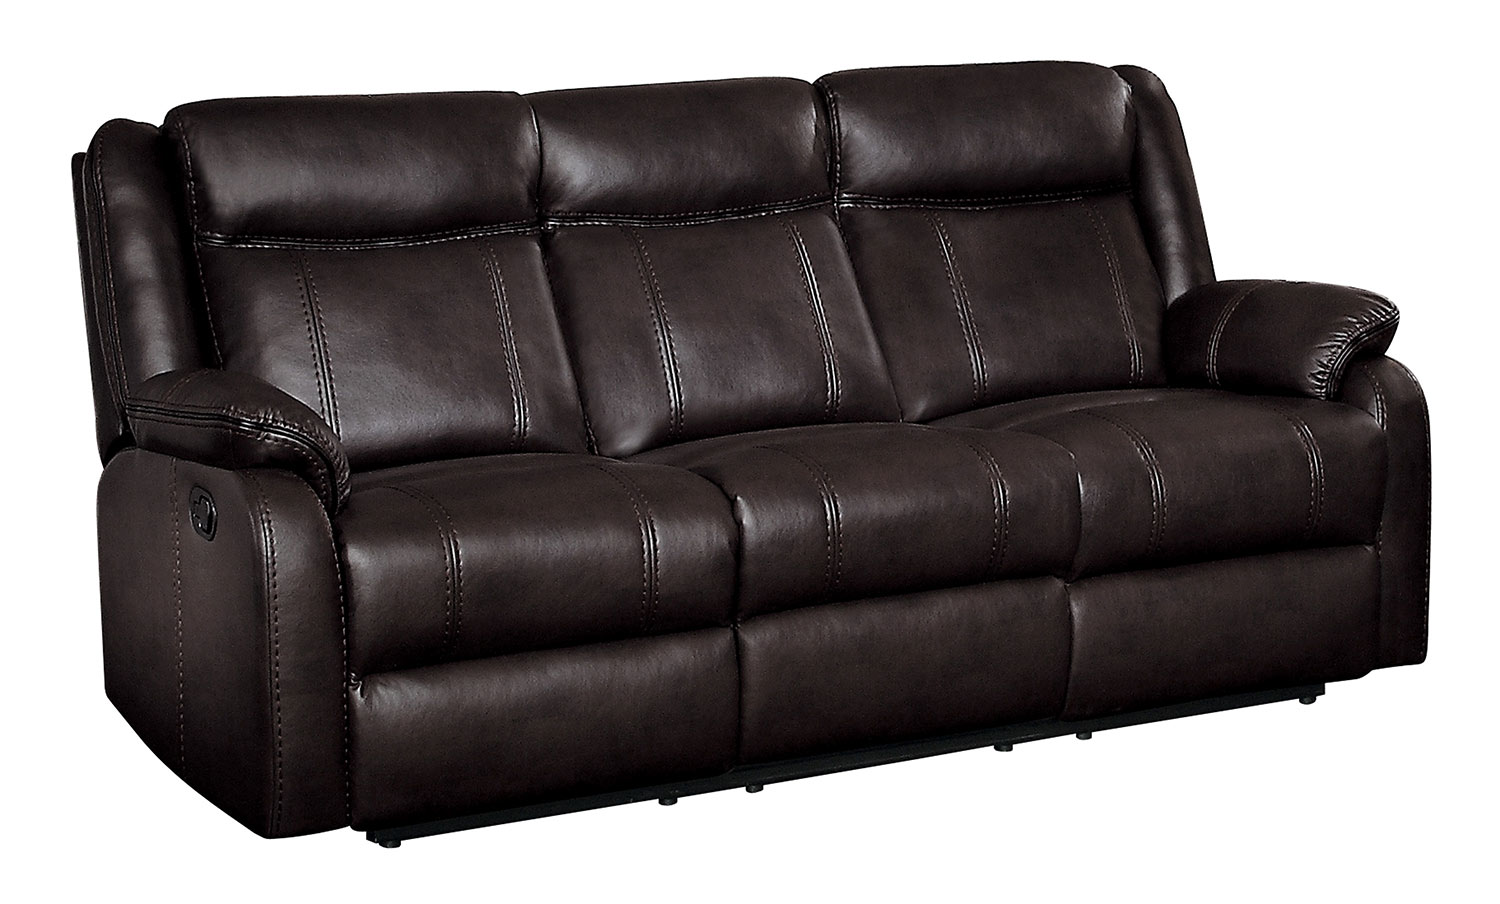 Homelegance Jude Double Reclining Sofa with Drop-Down Table - Dark Brown Leather Gel Match